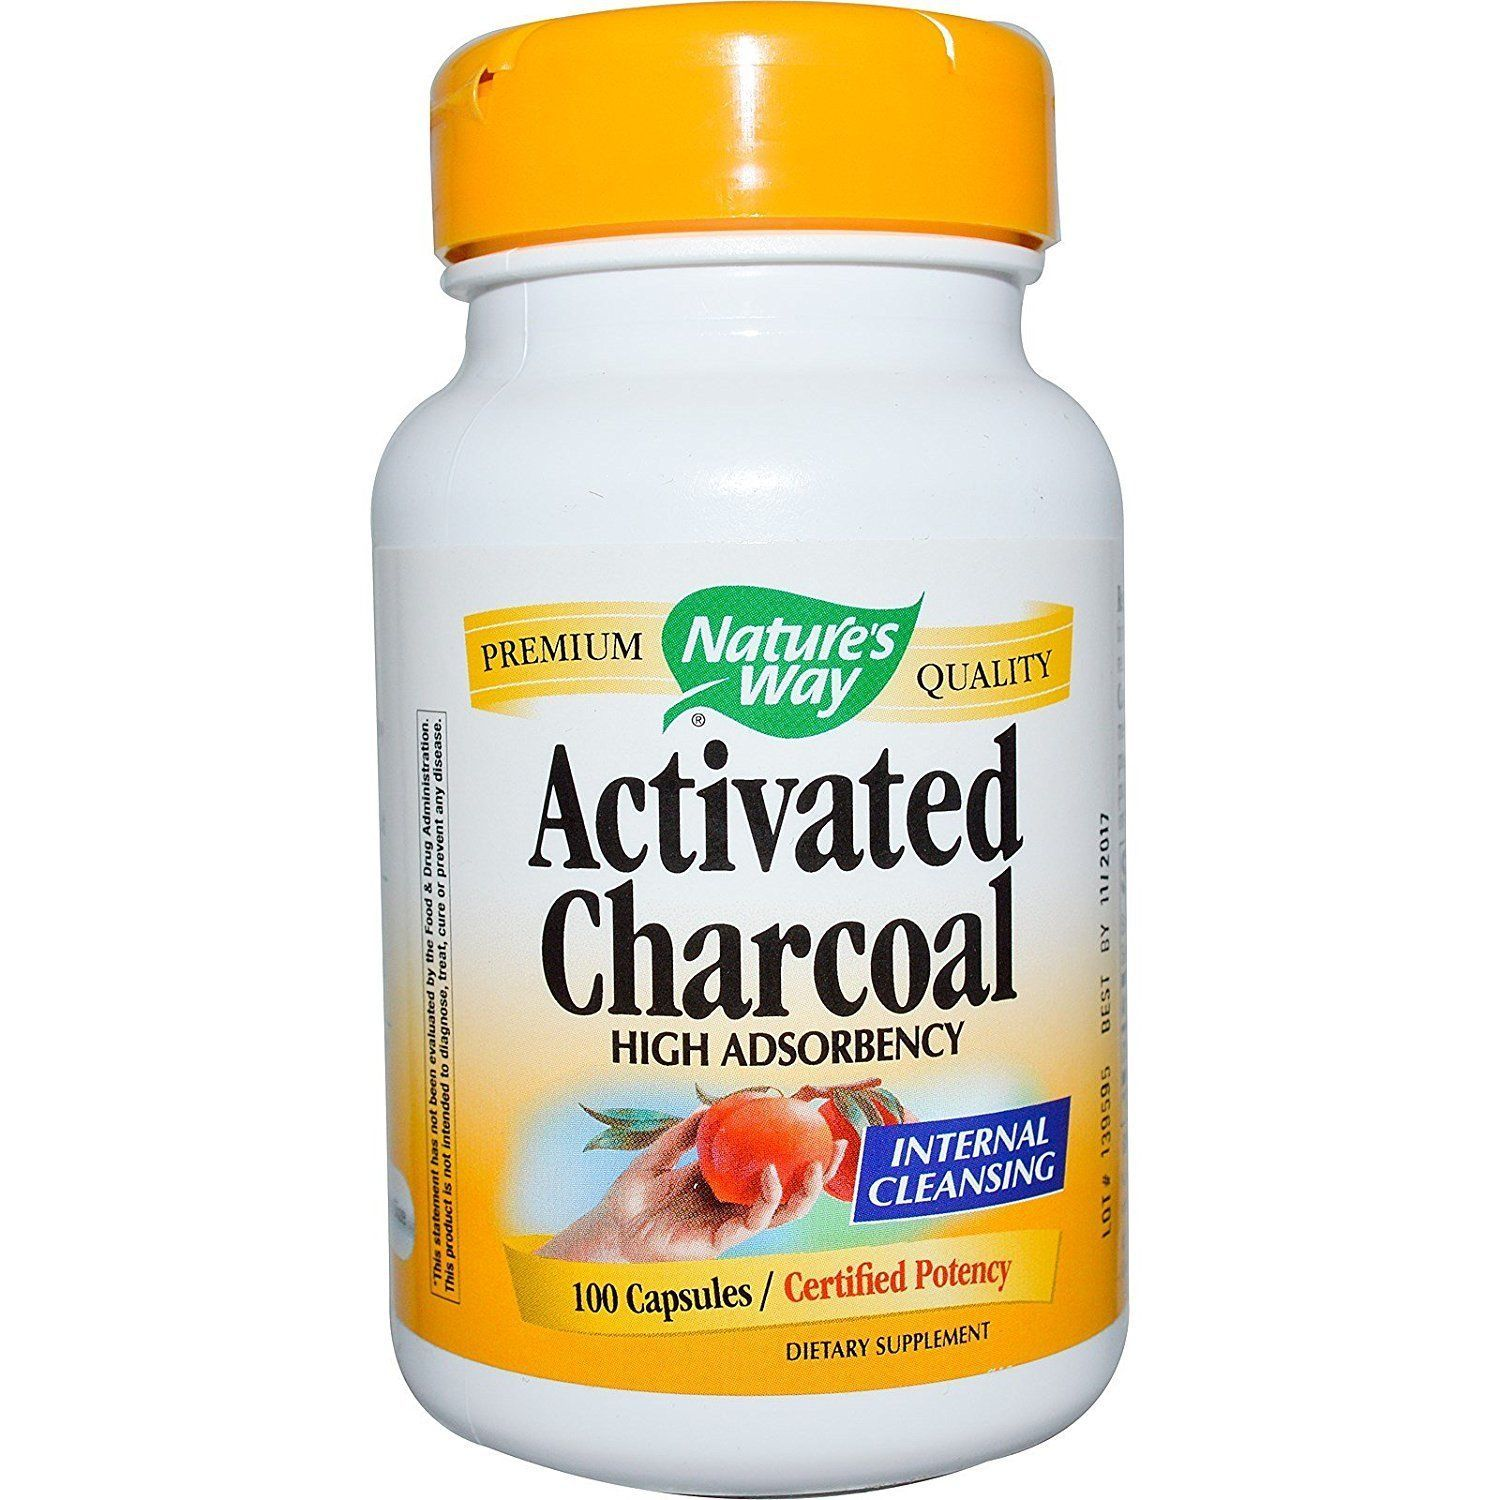 Nature's Way Activated Charcoal, 100 Capsules [New Sealed]